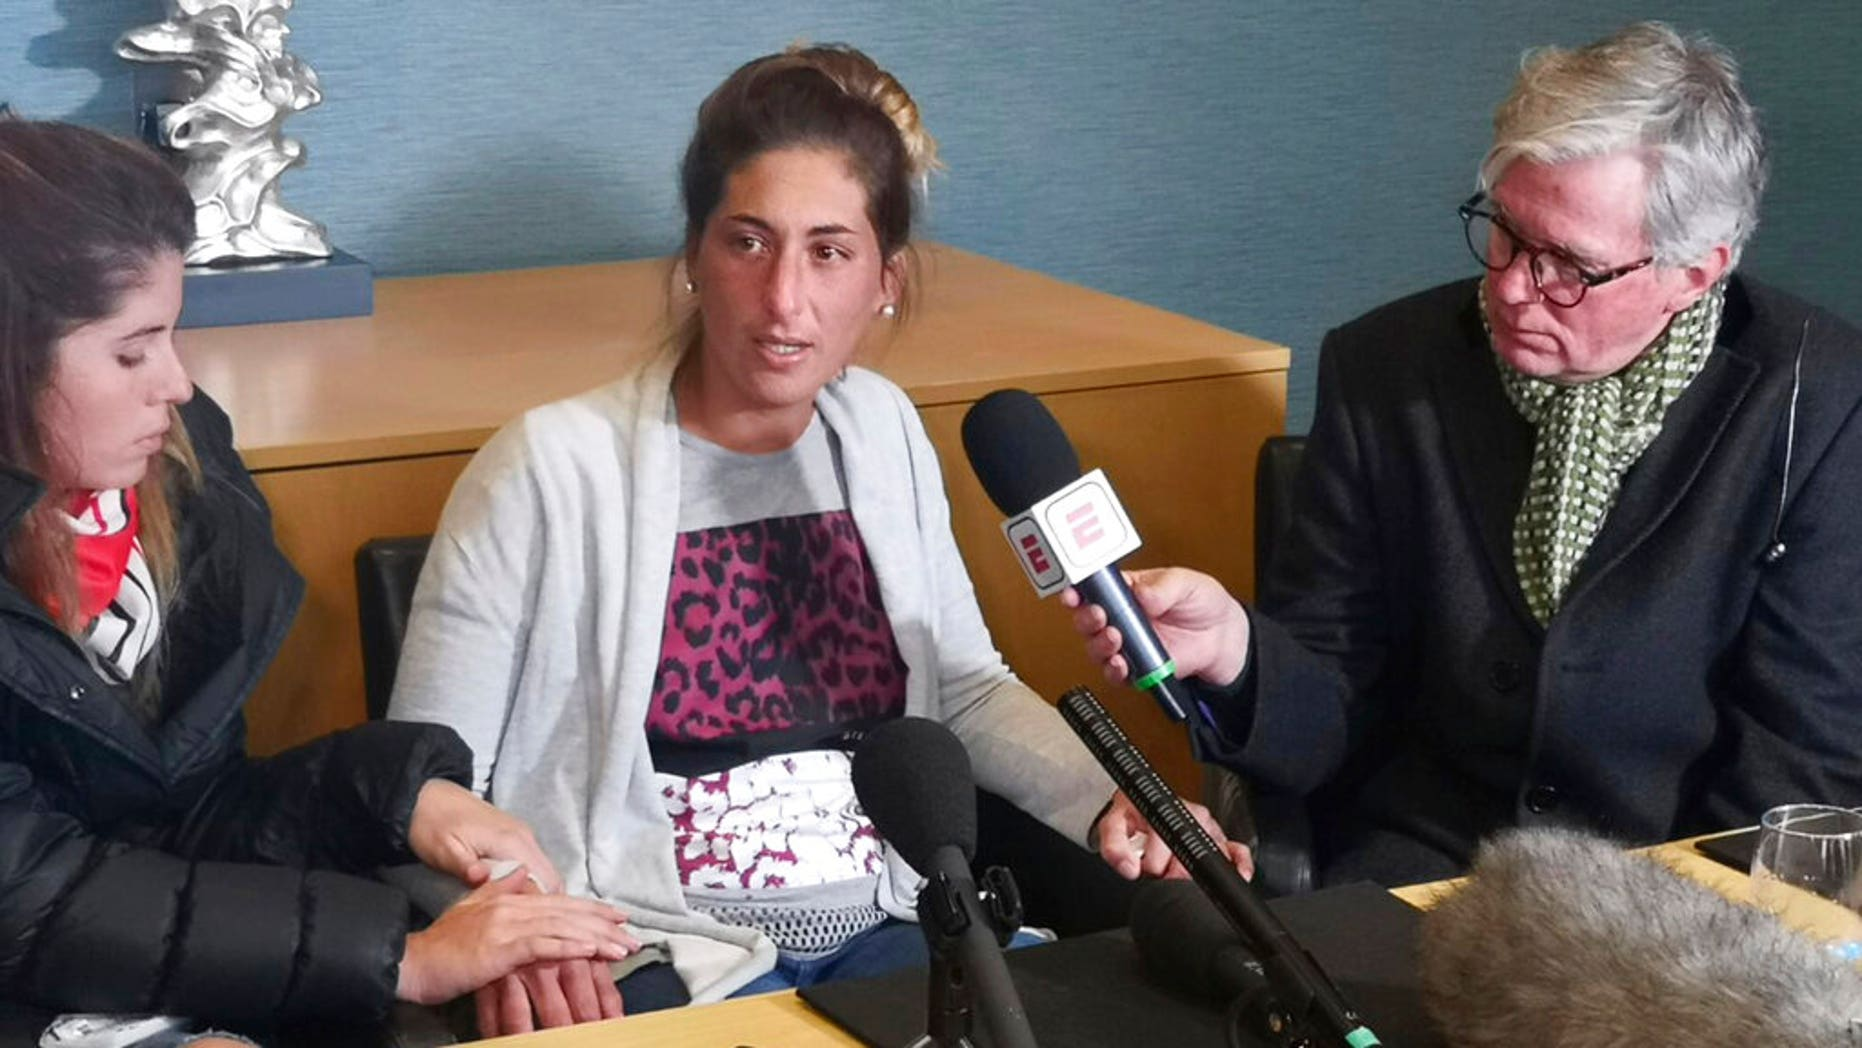 Romina Sala, the sister of Emiliano Salatalks during apress conference at St David's Hotel in Cardiff, Wales, Thursday Jan. 24, 2019.